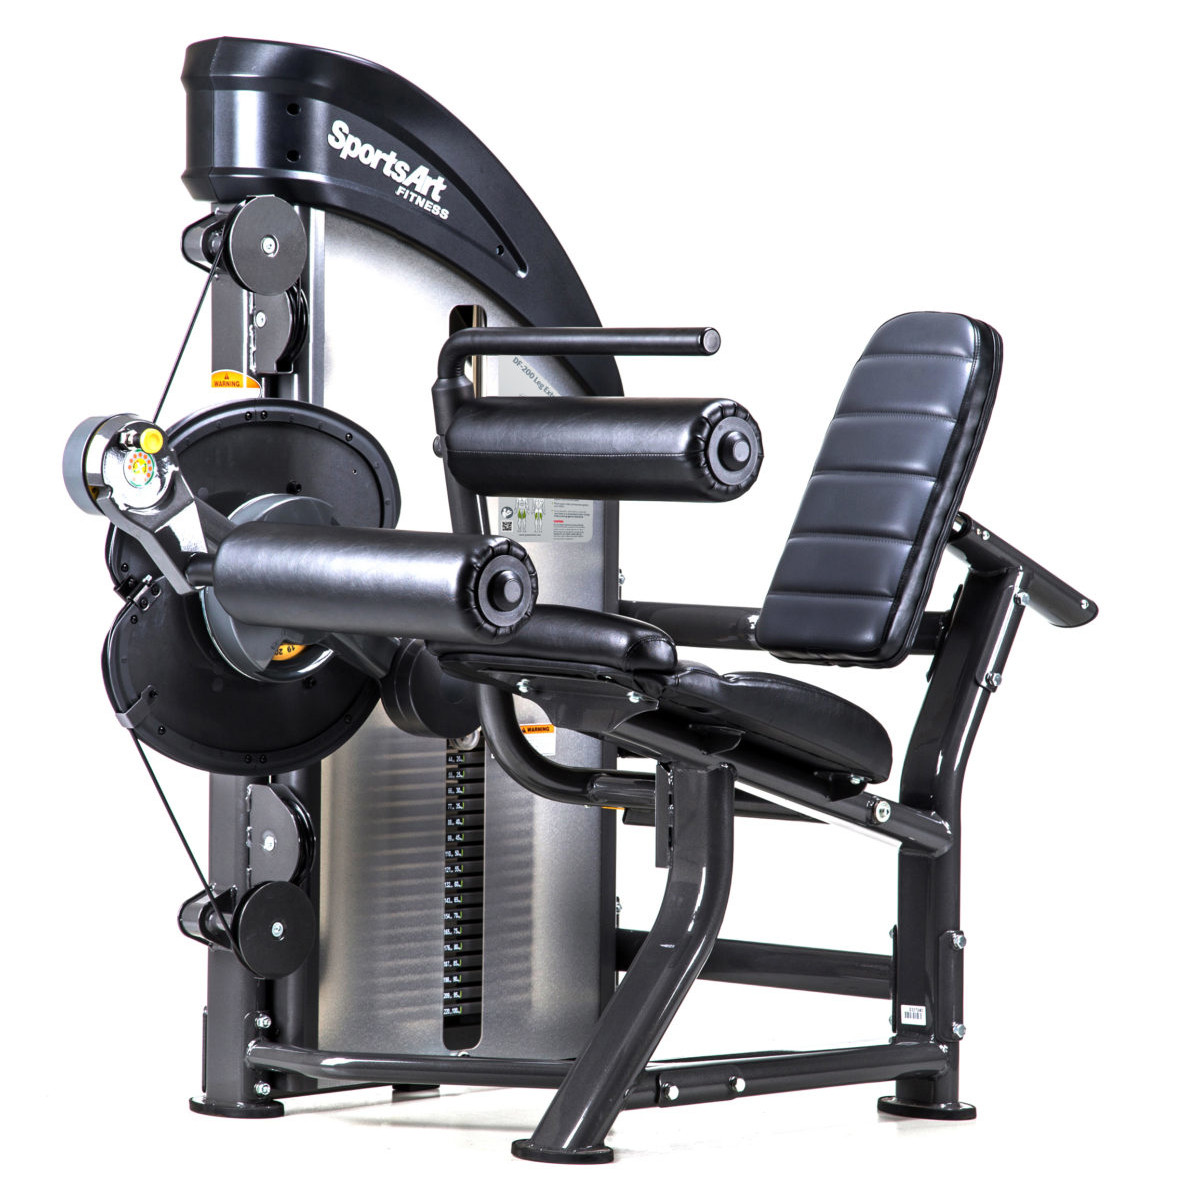 SportsArt S-Dual Function Series